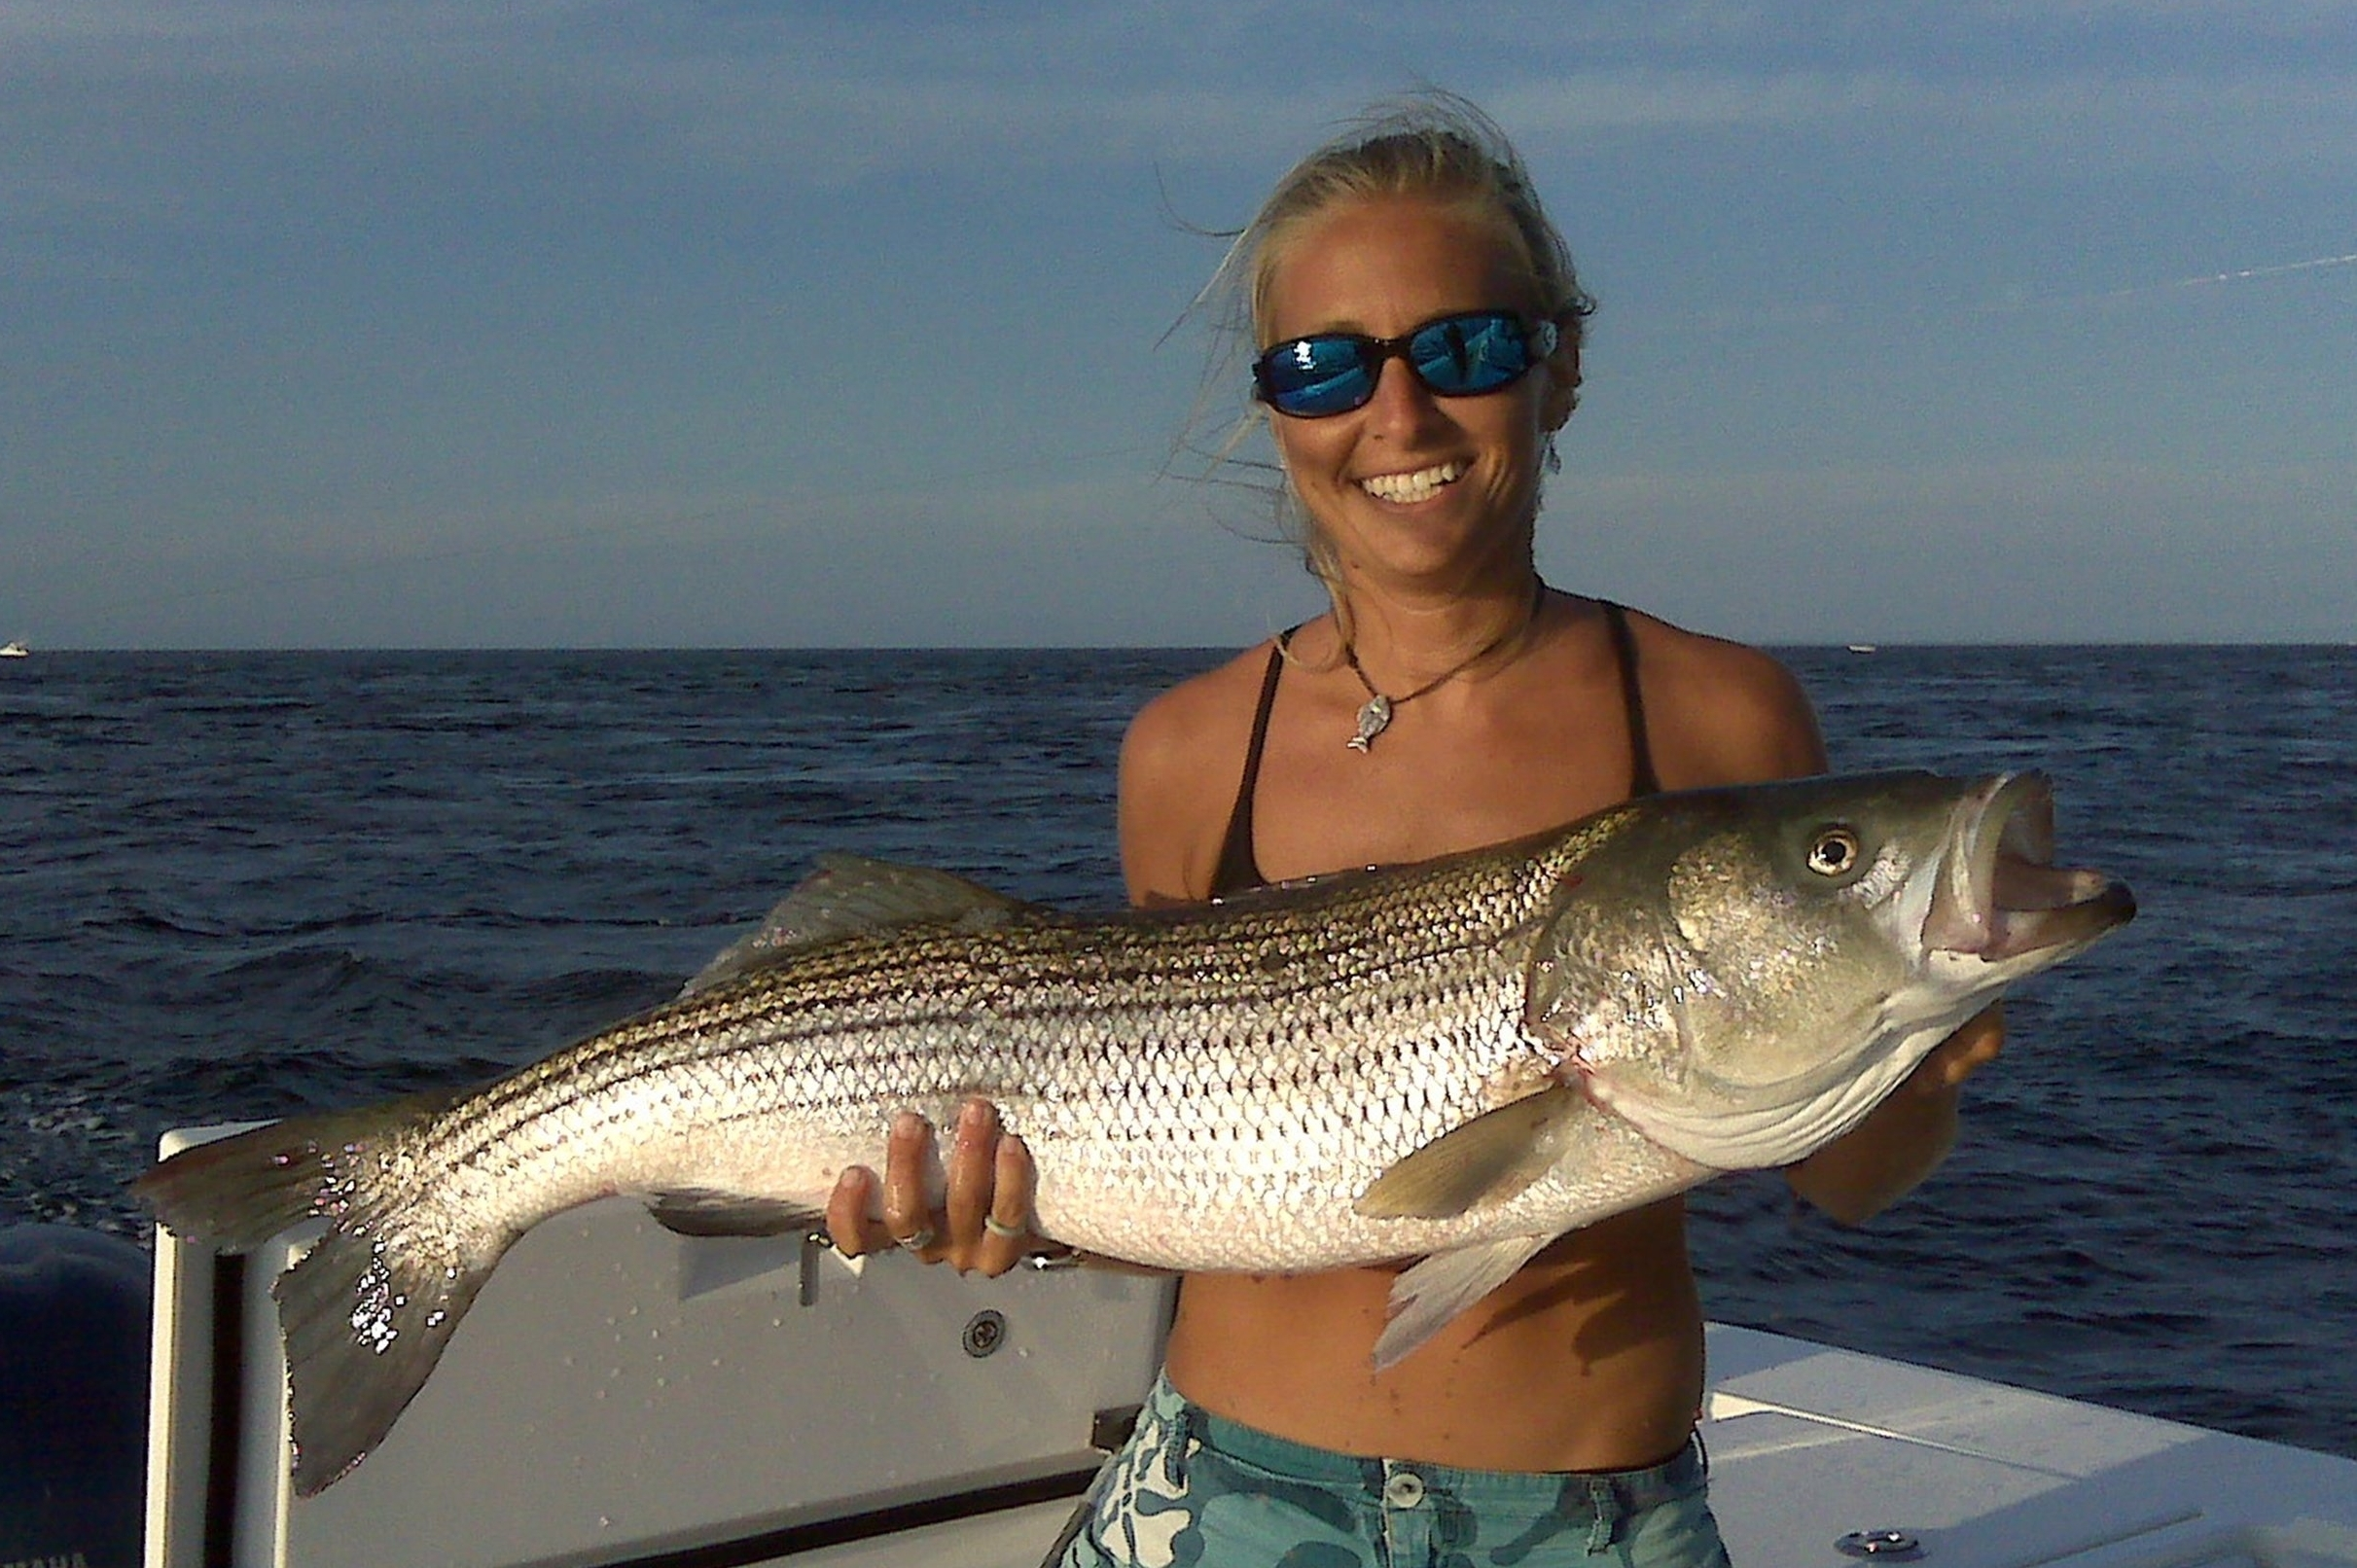 Want to watch more of Gaelin's fishing videos? Click the image above!